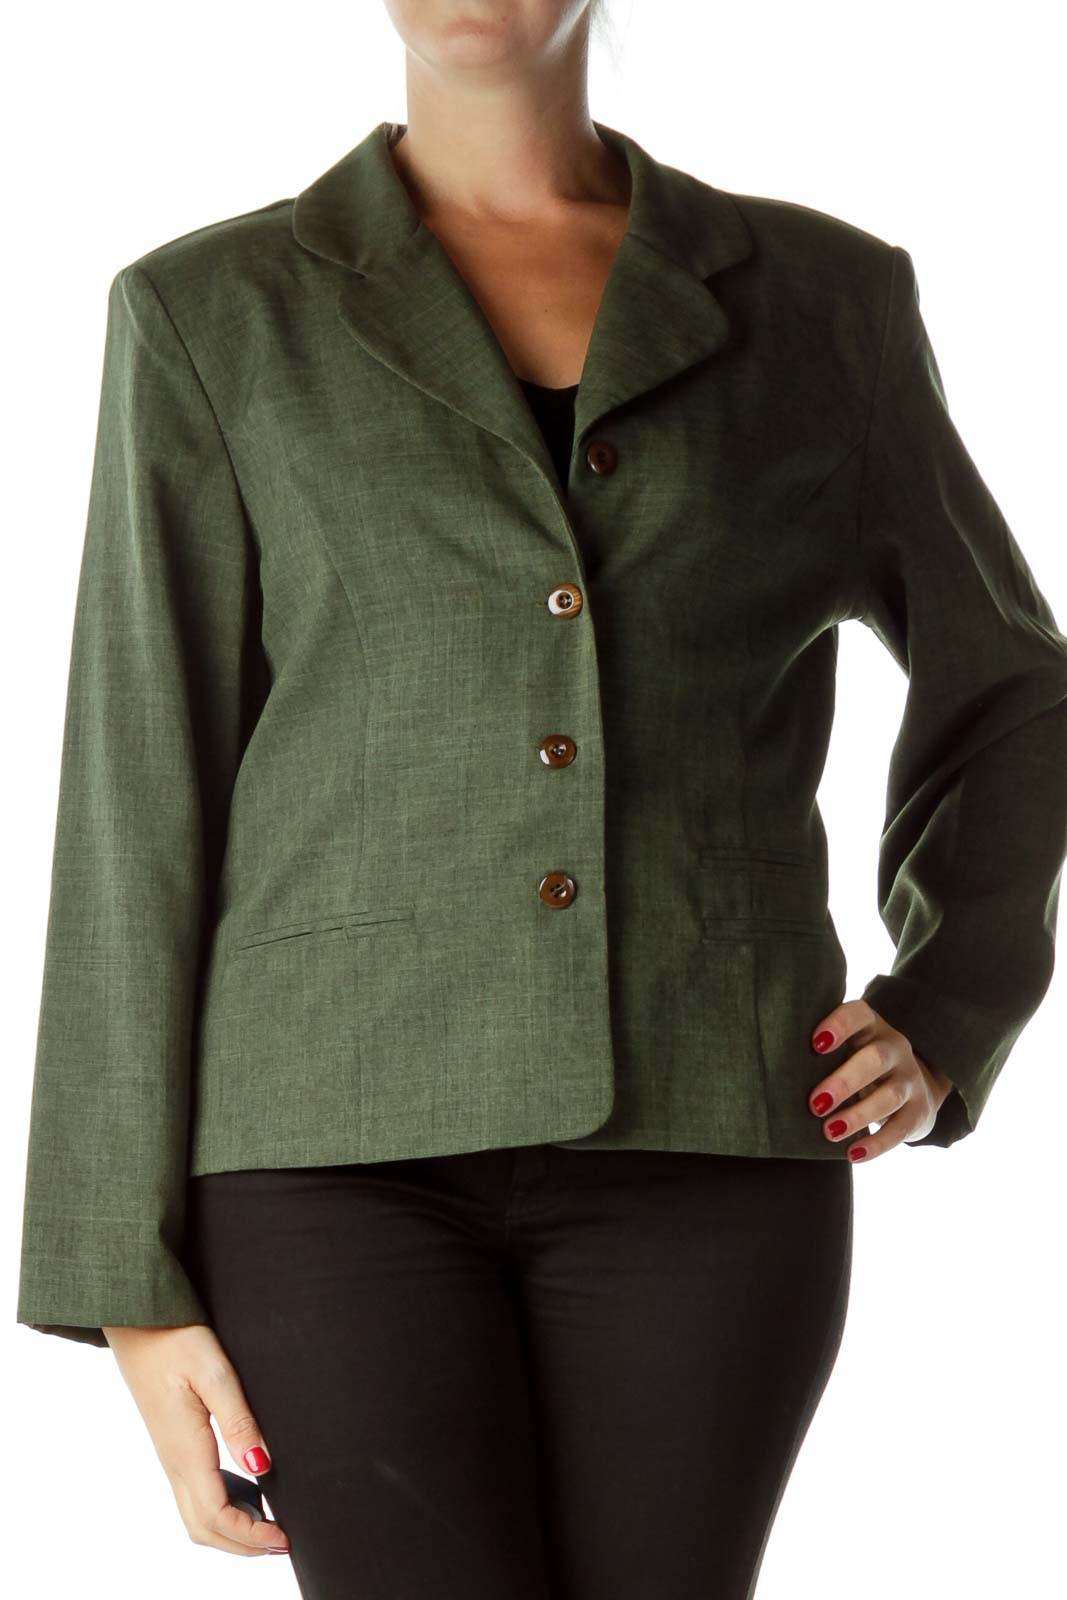 Green Textured Suit Jacket